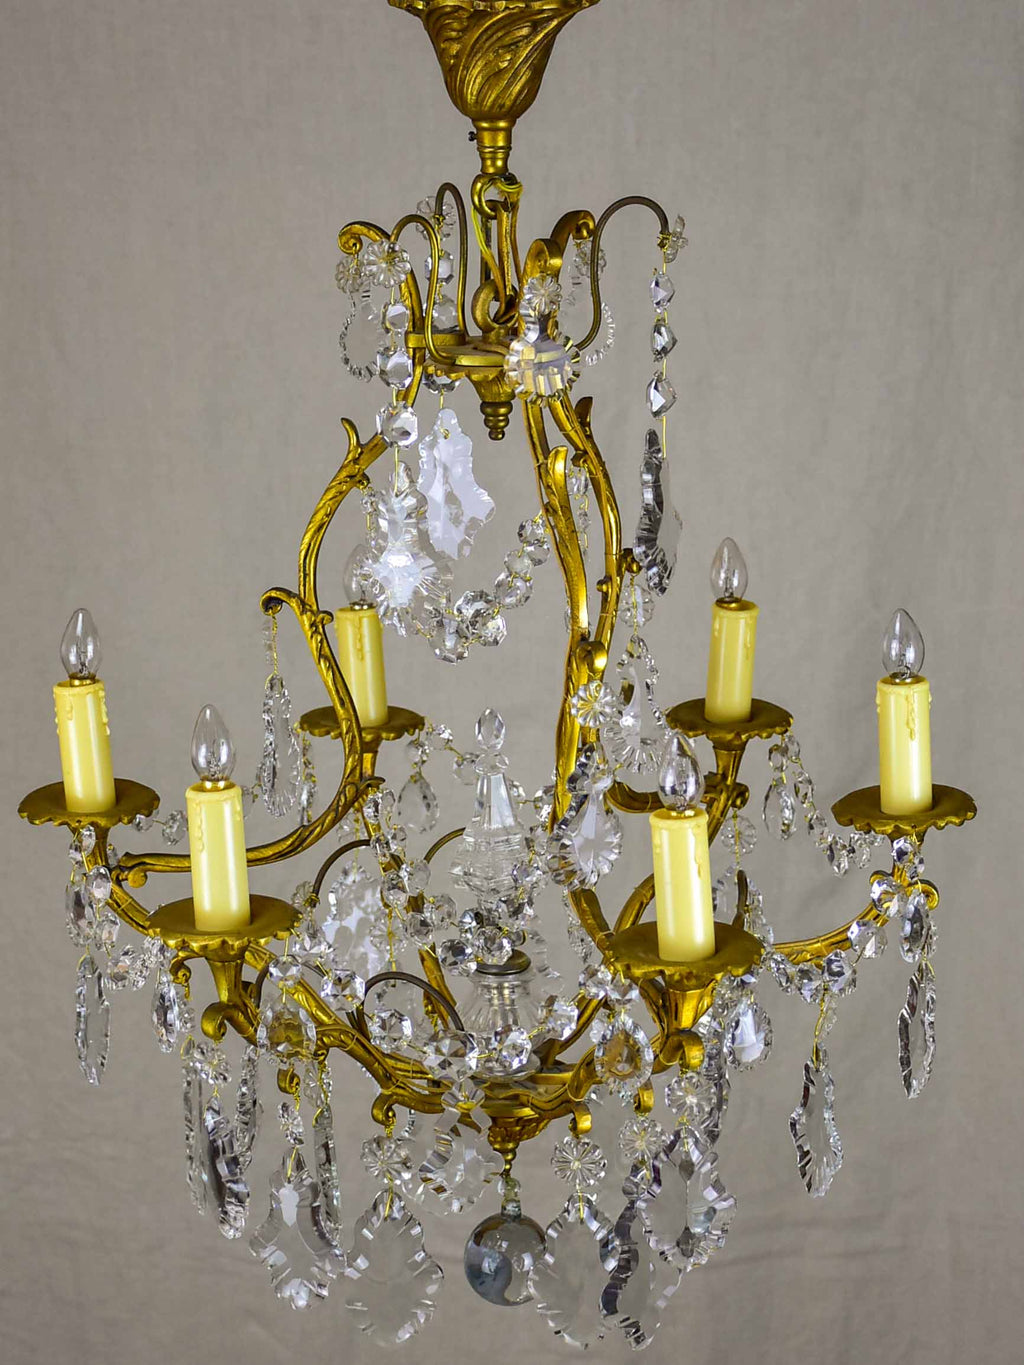 Antique French crystal chandelier - 6 lights